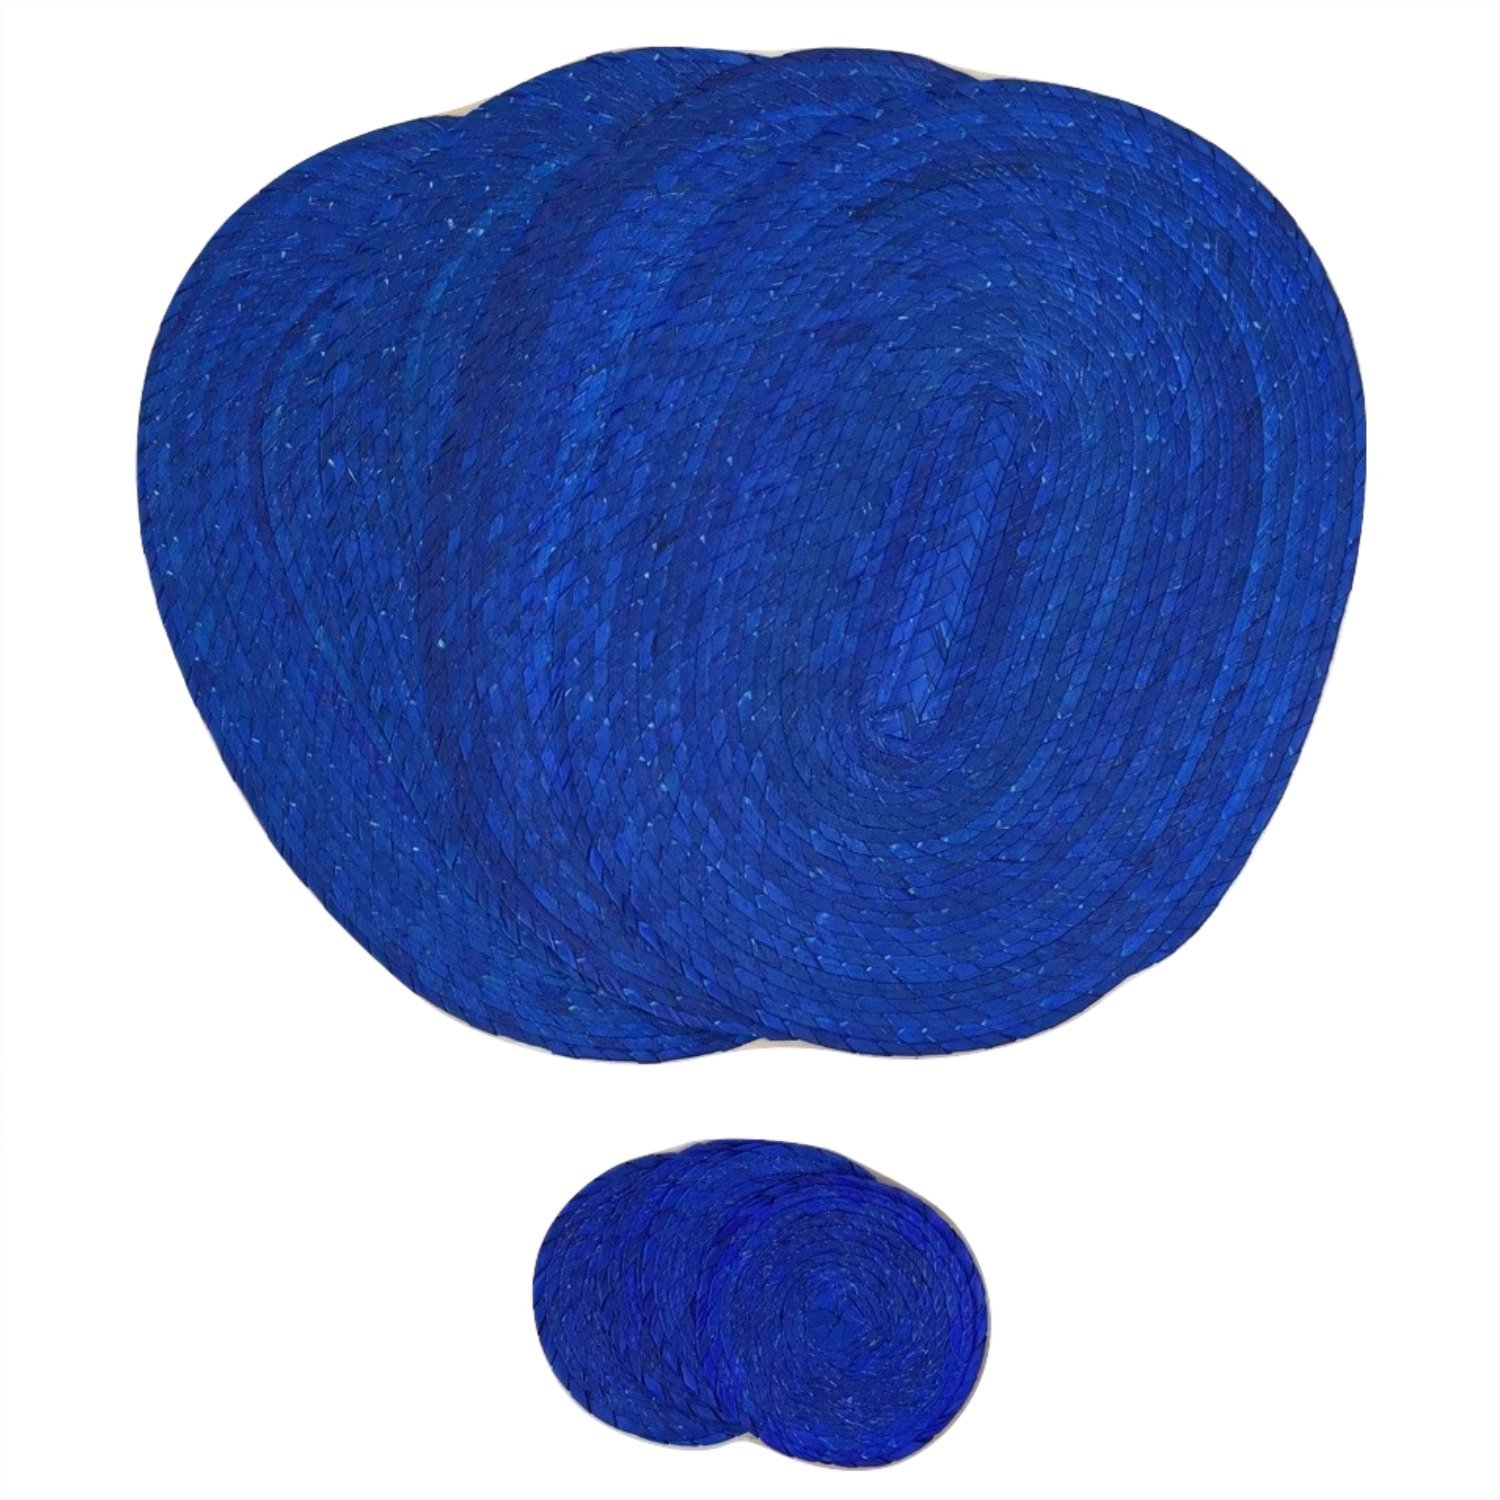 Royal Blue Placemats and Coasters – Set of 4 - Mexican Decor Style - Eco-Friendly, Handmade, Woven, Braided and Reversible - Easy to Clean, Great for Dining Table/Kitchen. Indoor or Outdoor use